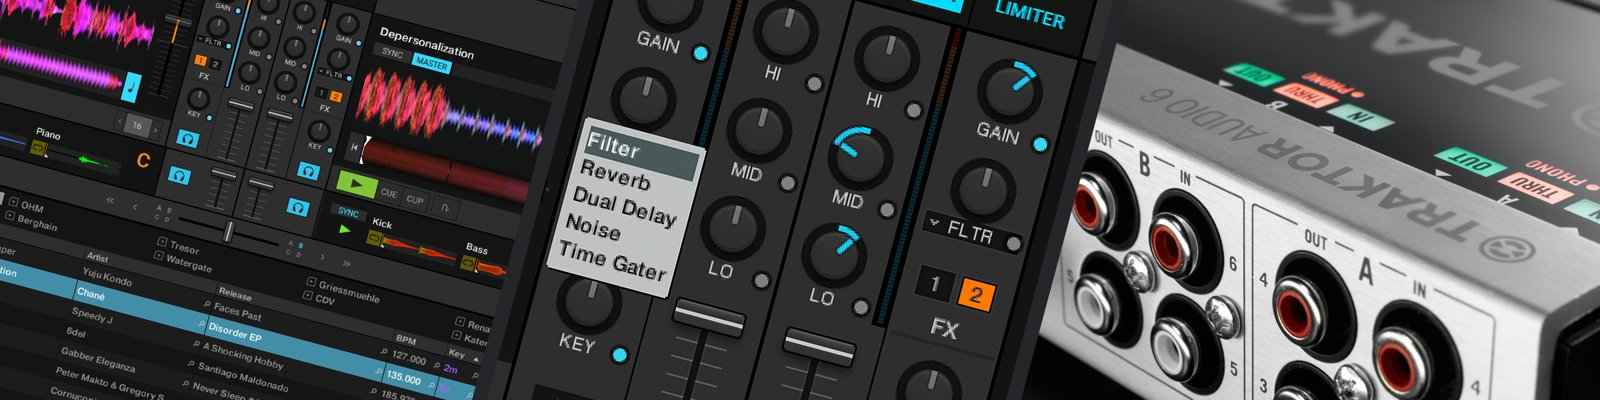 traktor_pro_3_overview_page_07_